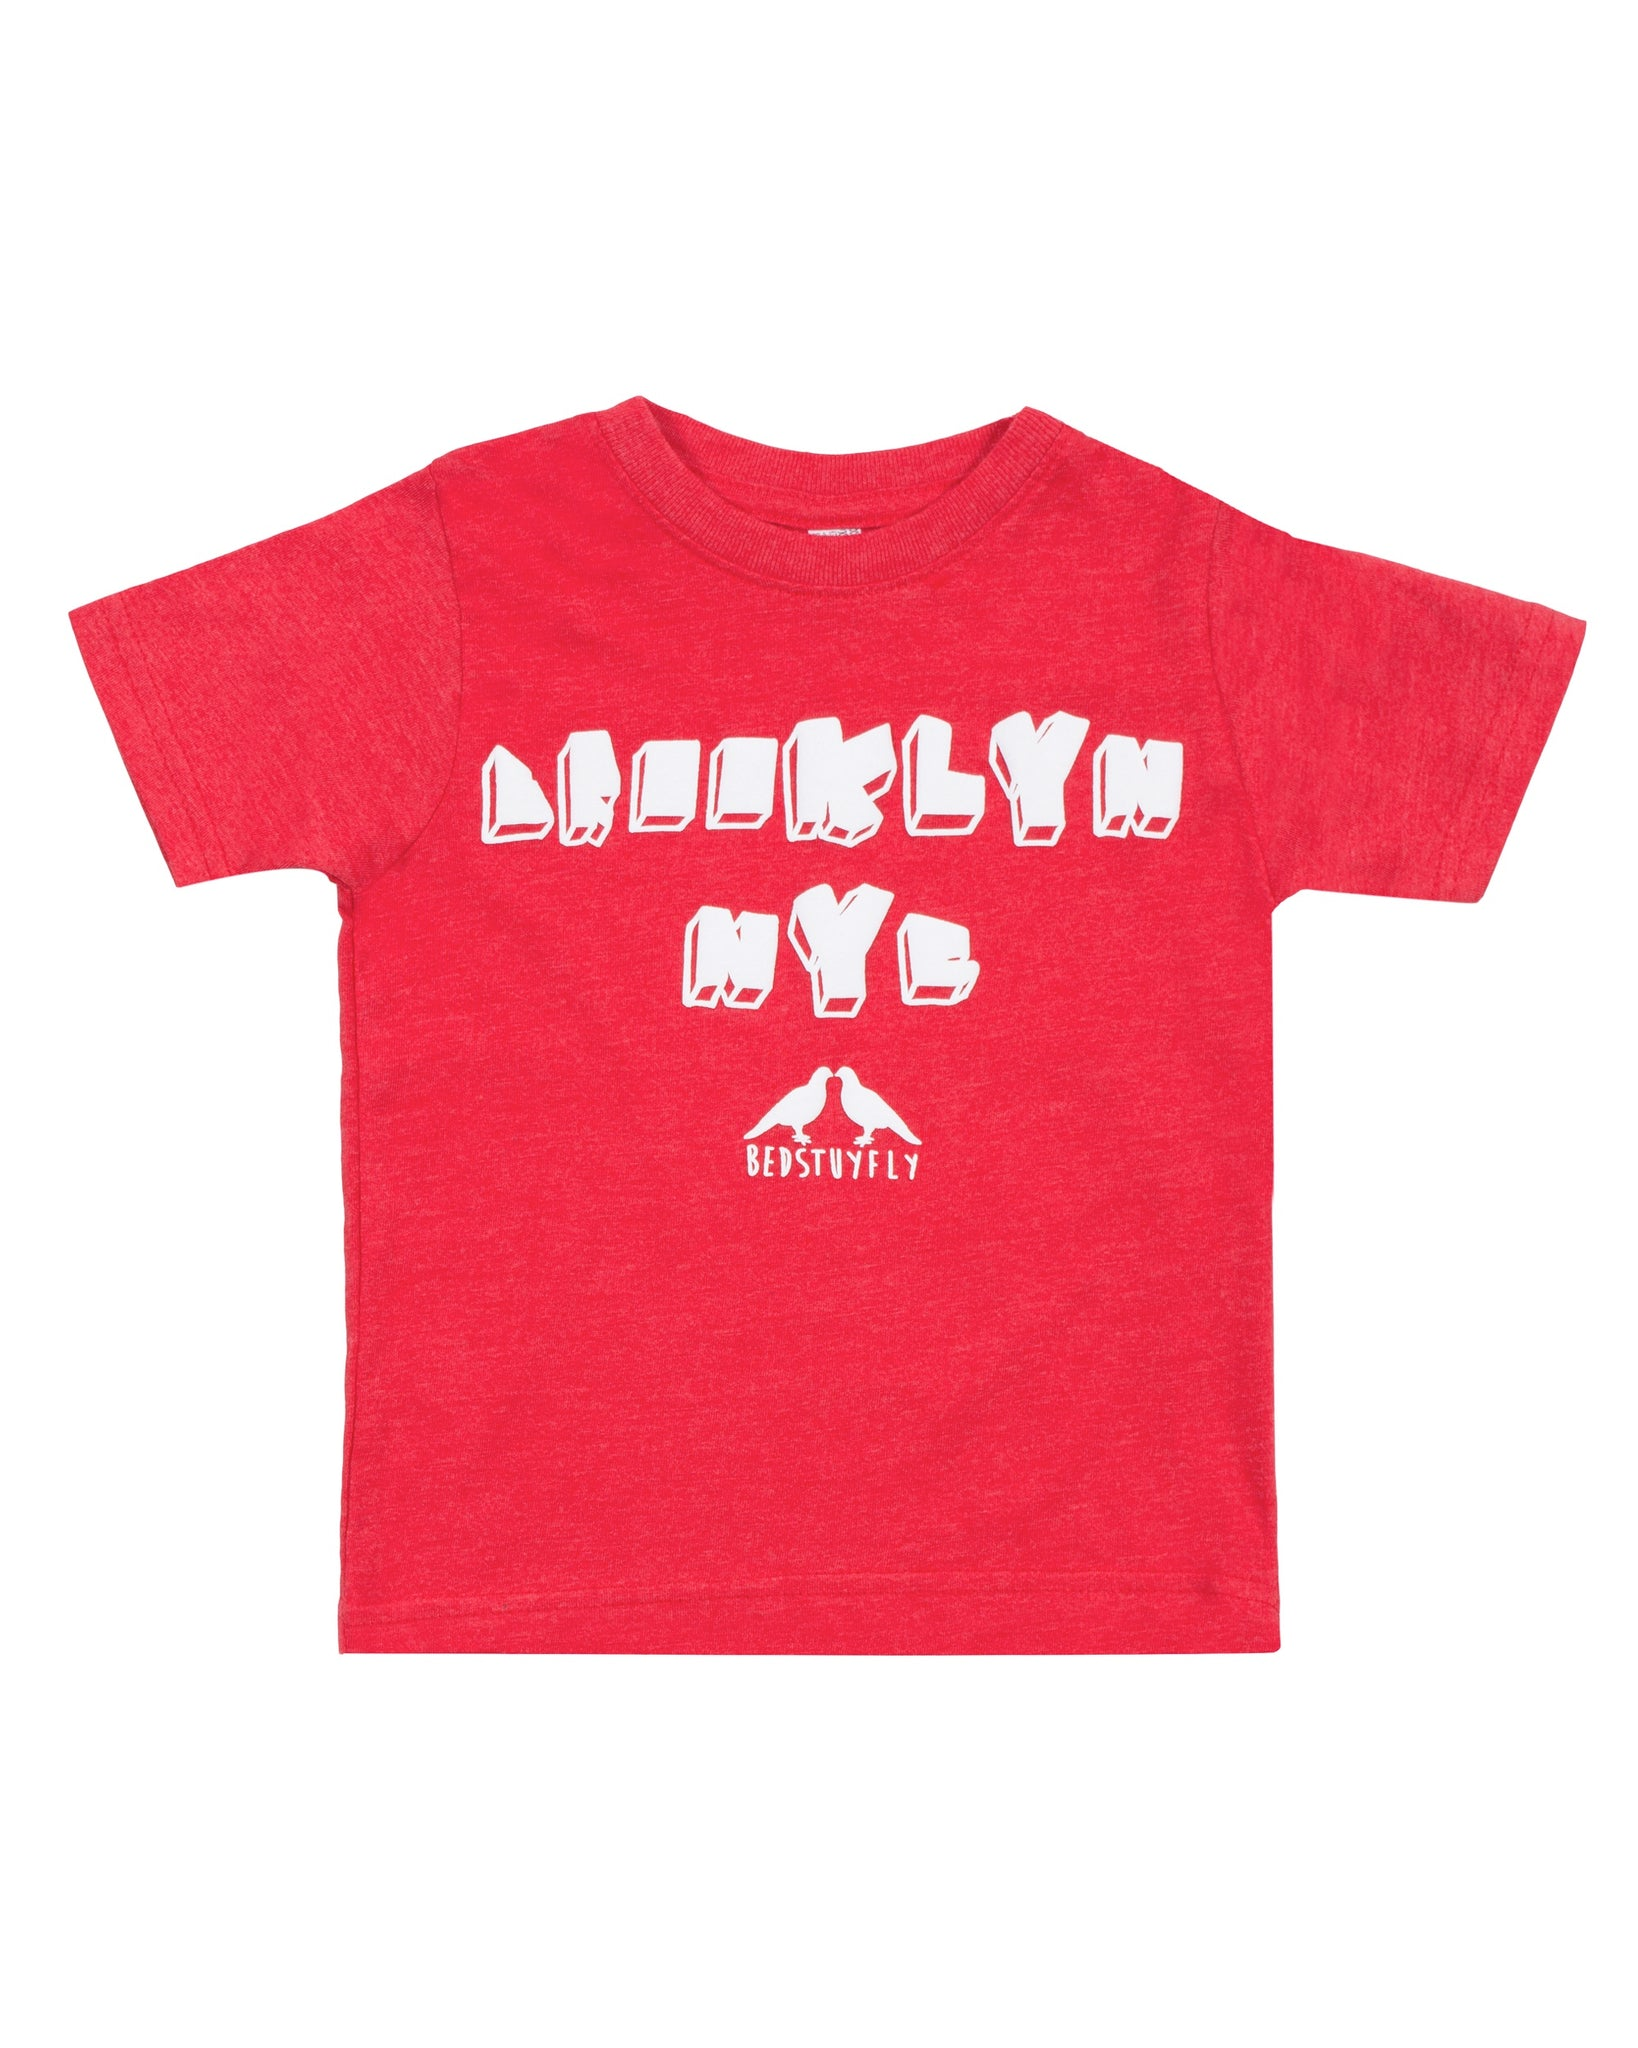 Brooklyn NY Kids T-Shirt (Red)